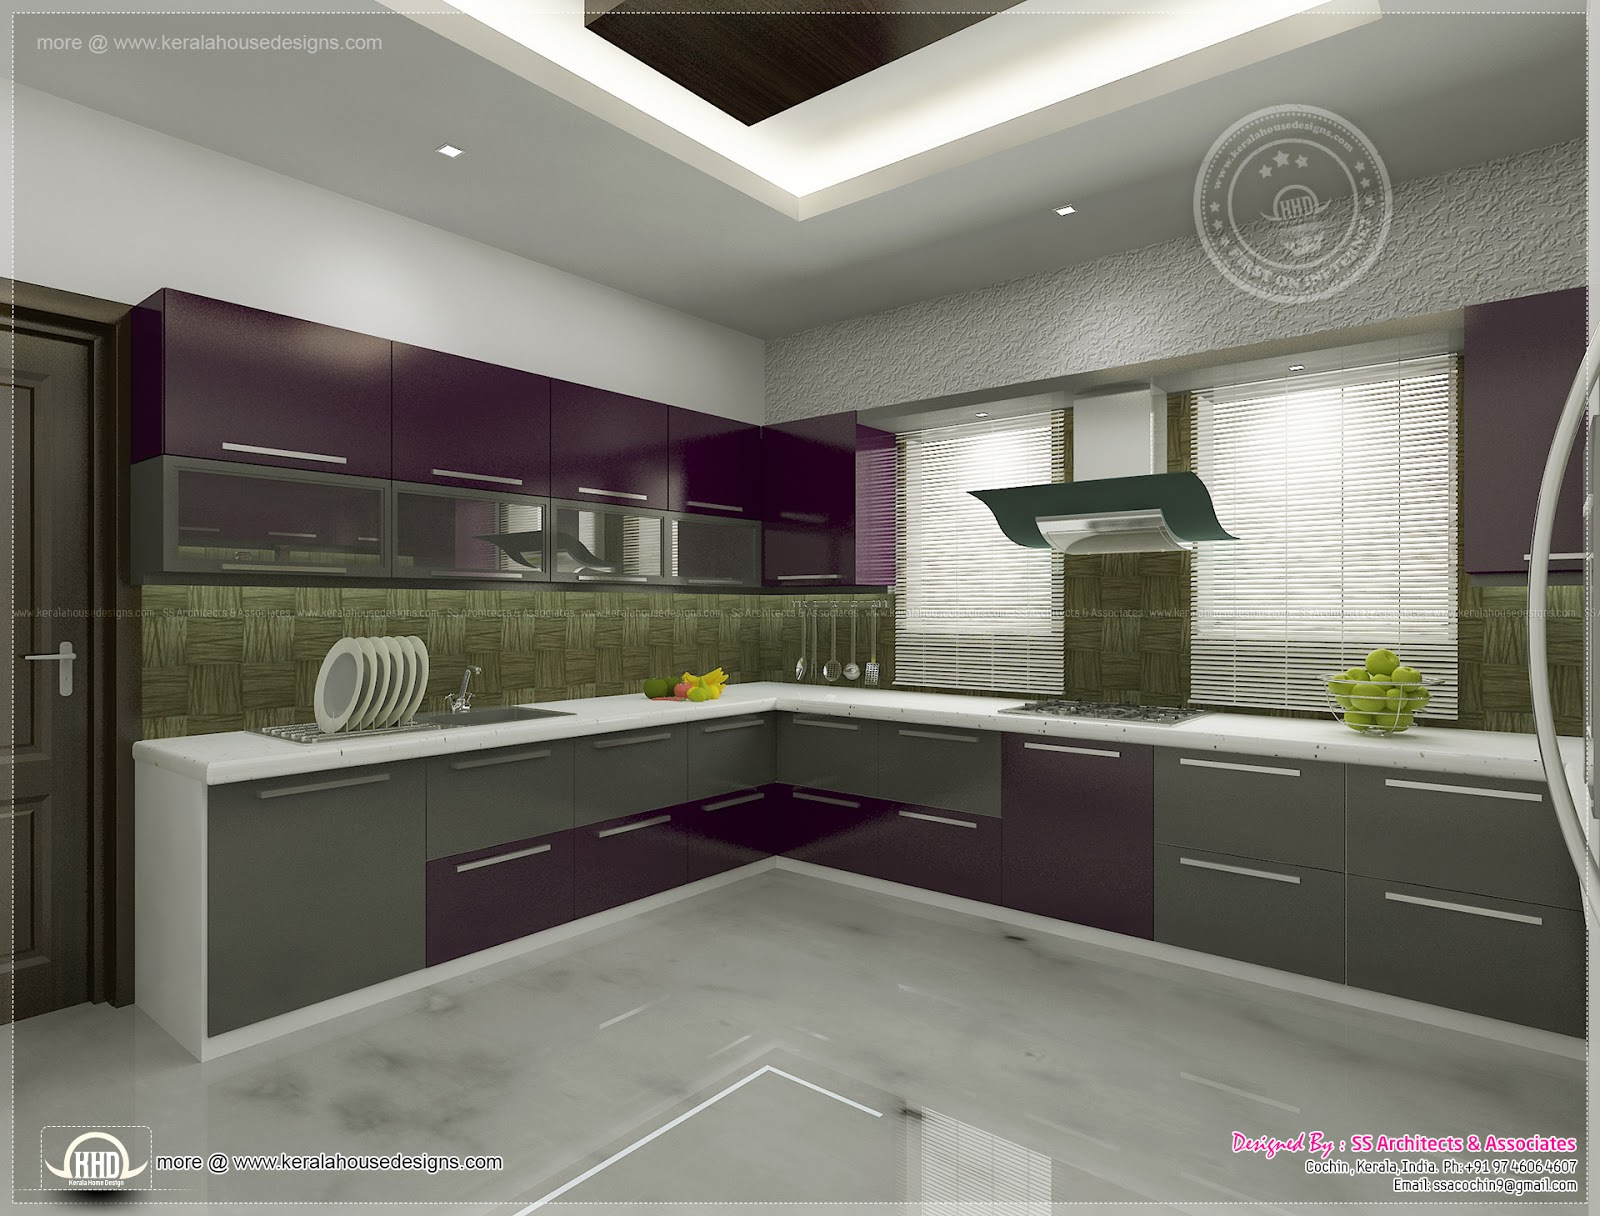 Kitchen interior views by ss architects cochin kerala Home plans with interior pictures